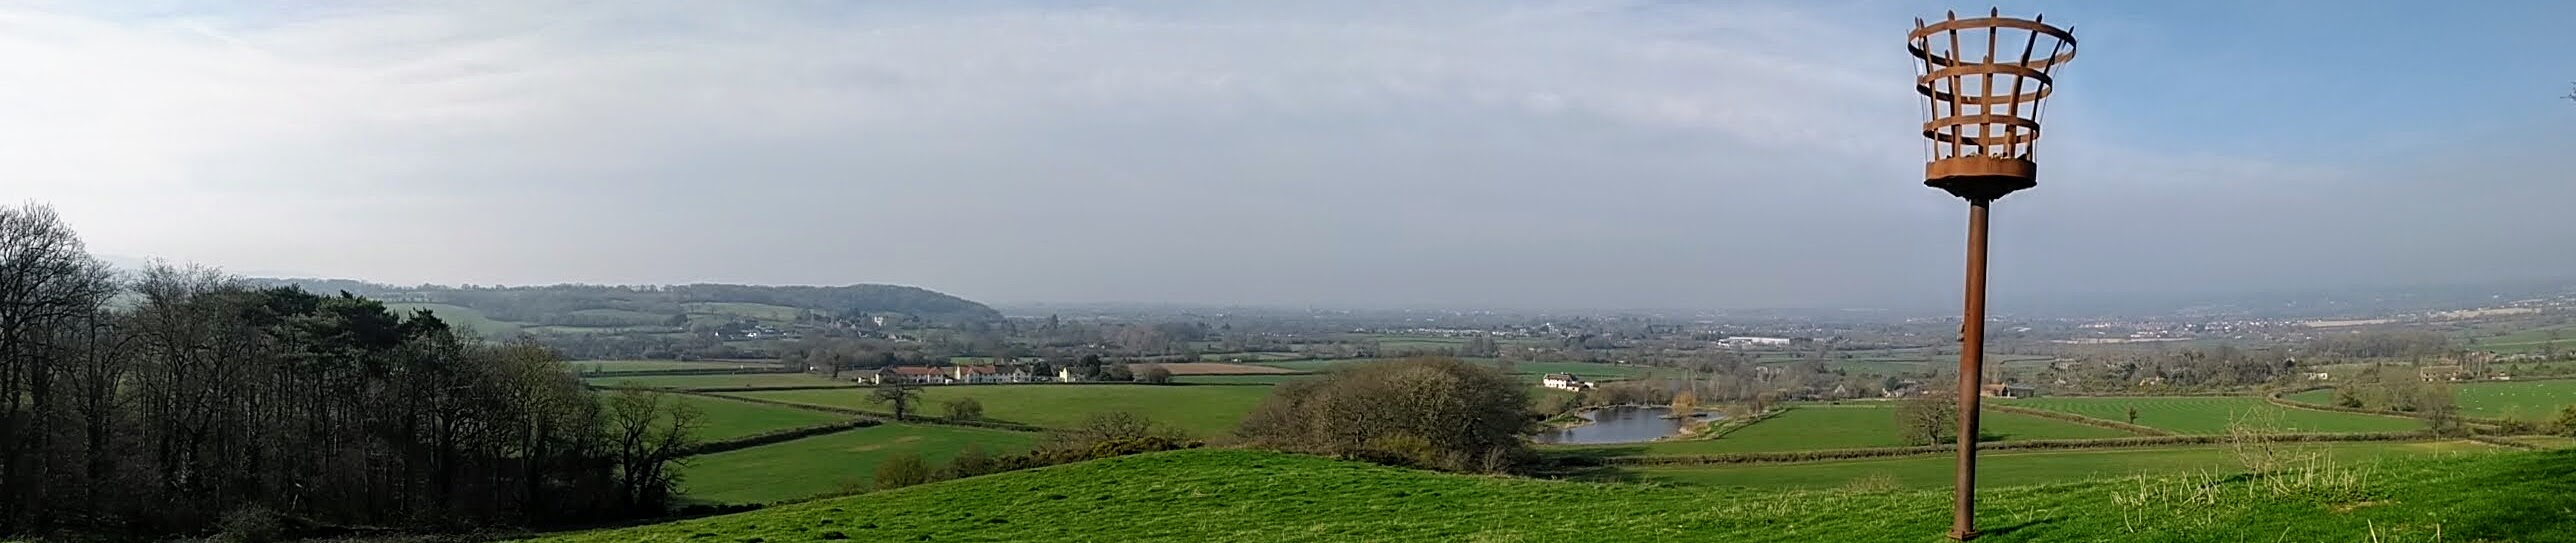 View across parish taken from Thorn Clump